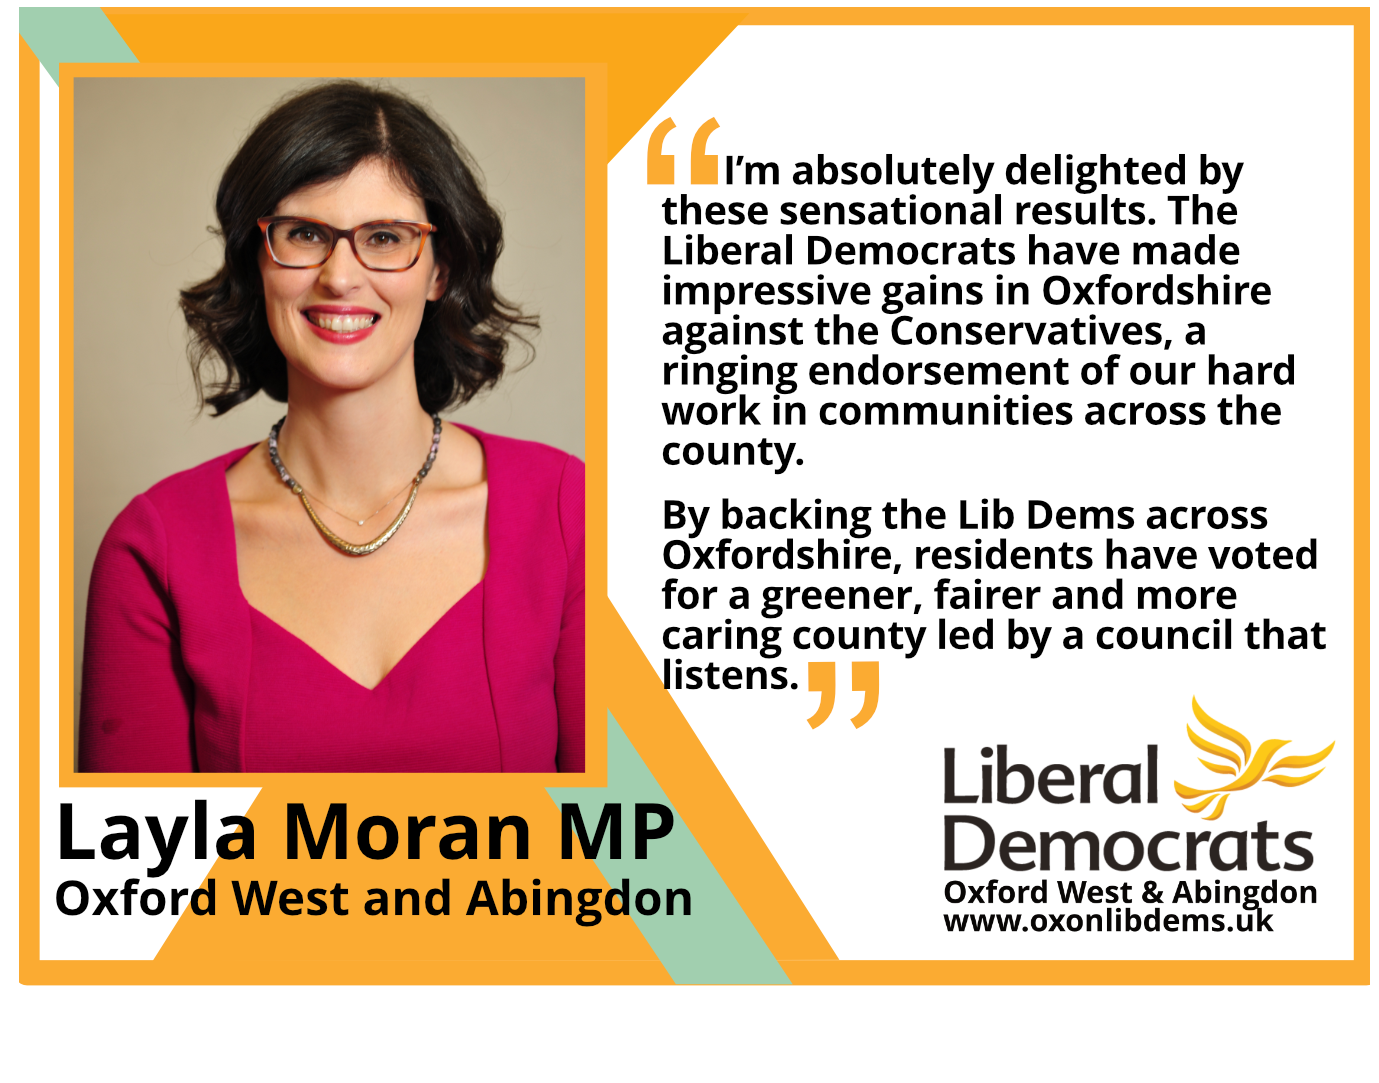 """""""I'm absolutely delighted by these sensational results. The Liberal Democrats have made impressive gains in Oxfordshire against the Conservatives, a ringing endorsement of our hard work in communities across the county. By backing the Lib Dems across Oxfordshire, residents have voted for a greener, fairer and more caring county led by a council that listens."""